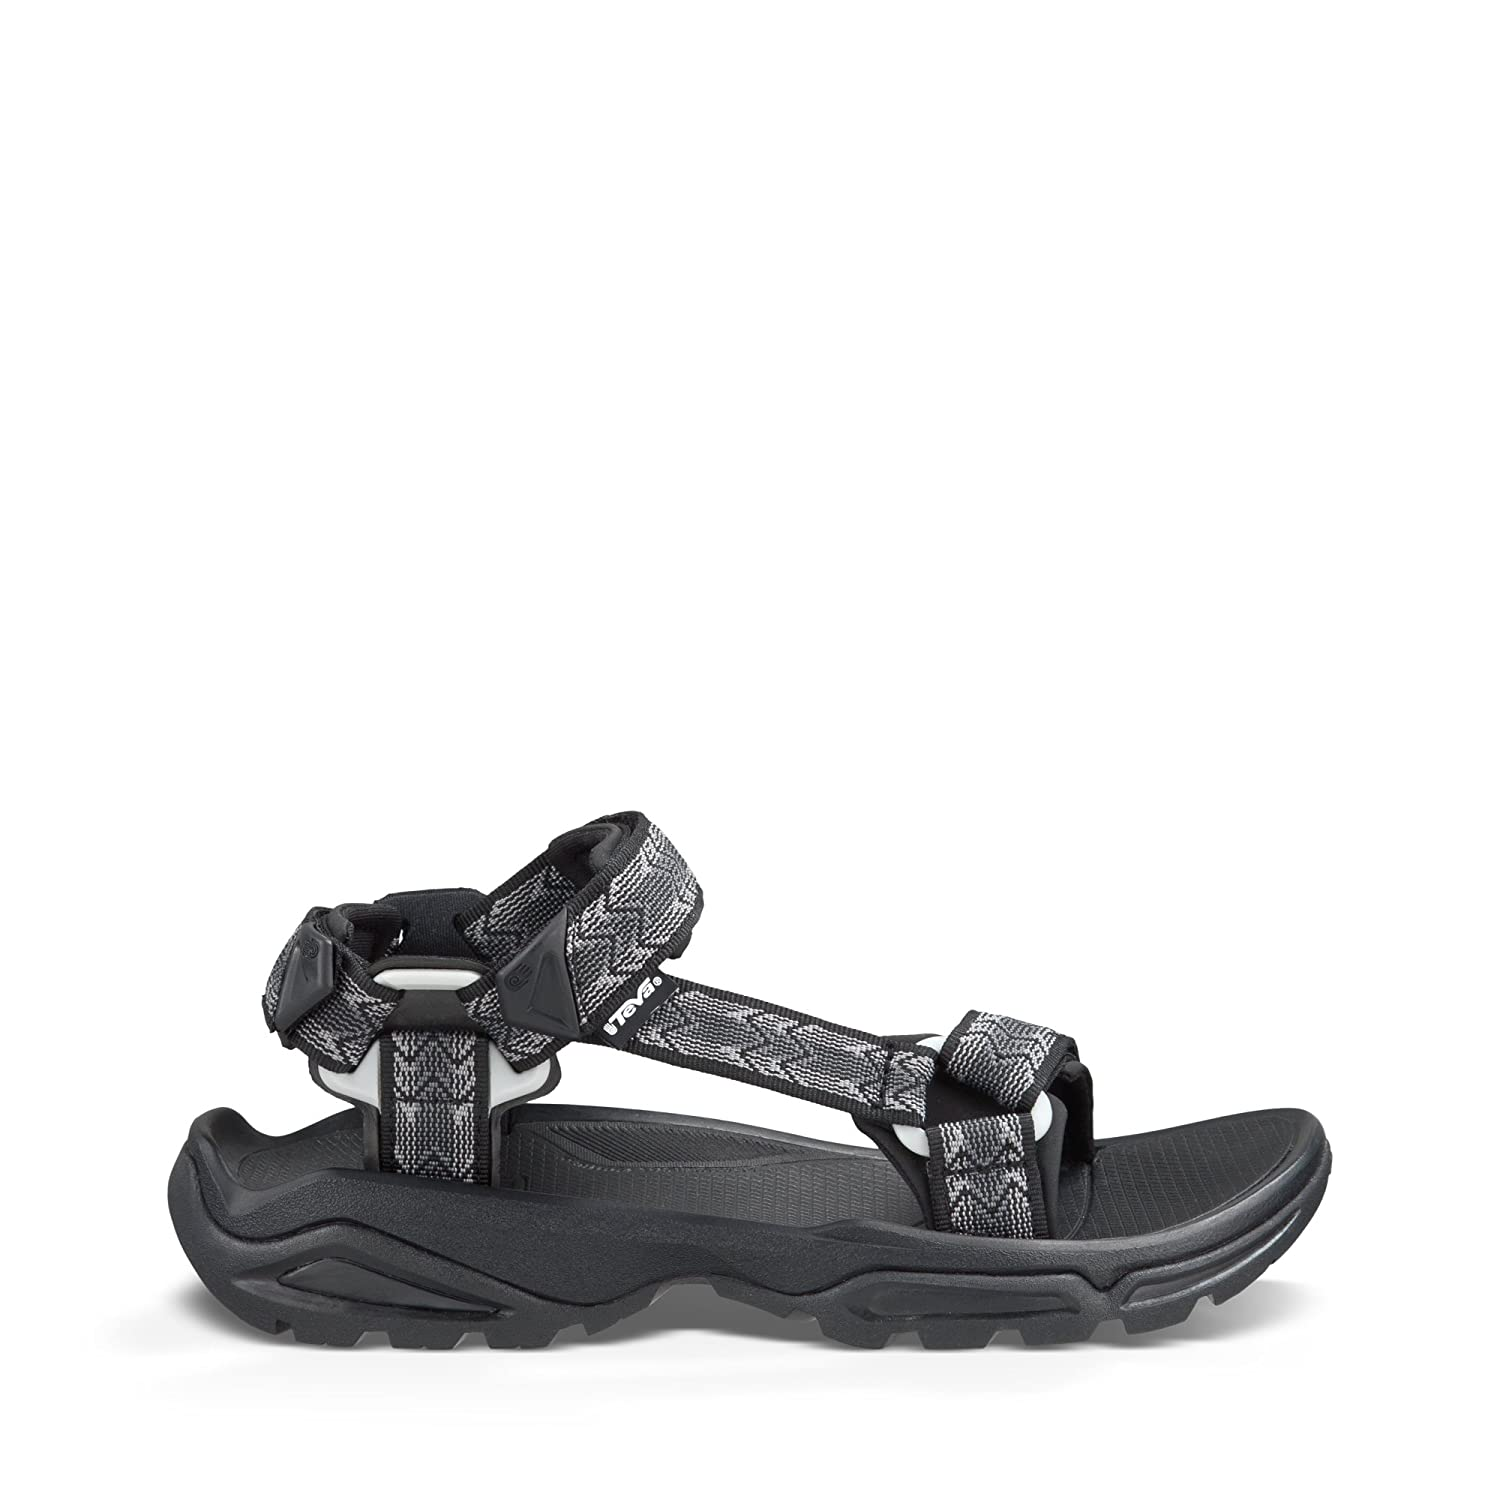 10cfaba83 Teva Men s Terra Sandal  Amazon.ca  Shoes   Handbags